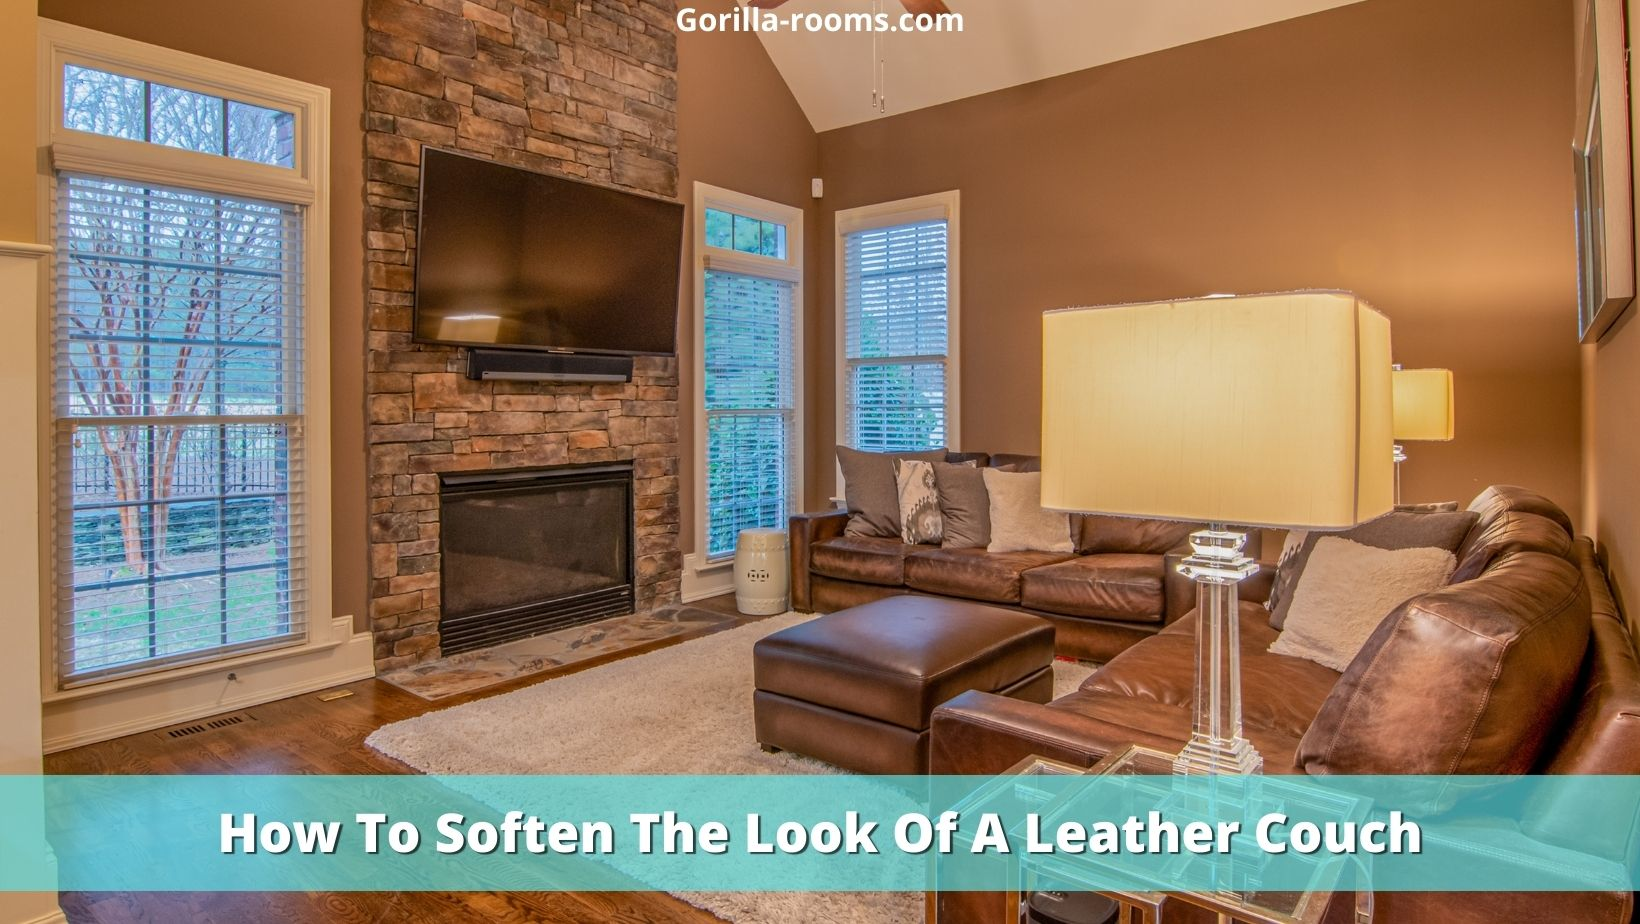 How To Soften The Look Of A Leather Couch